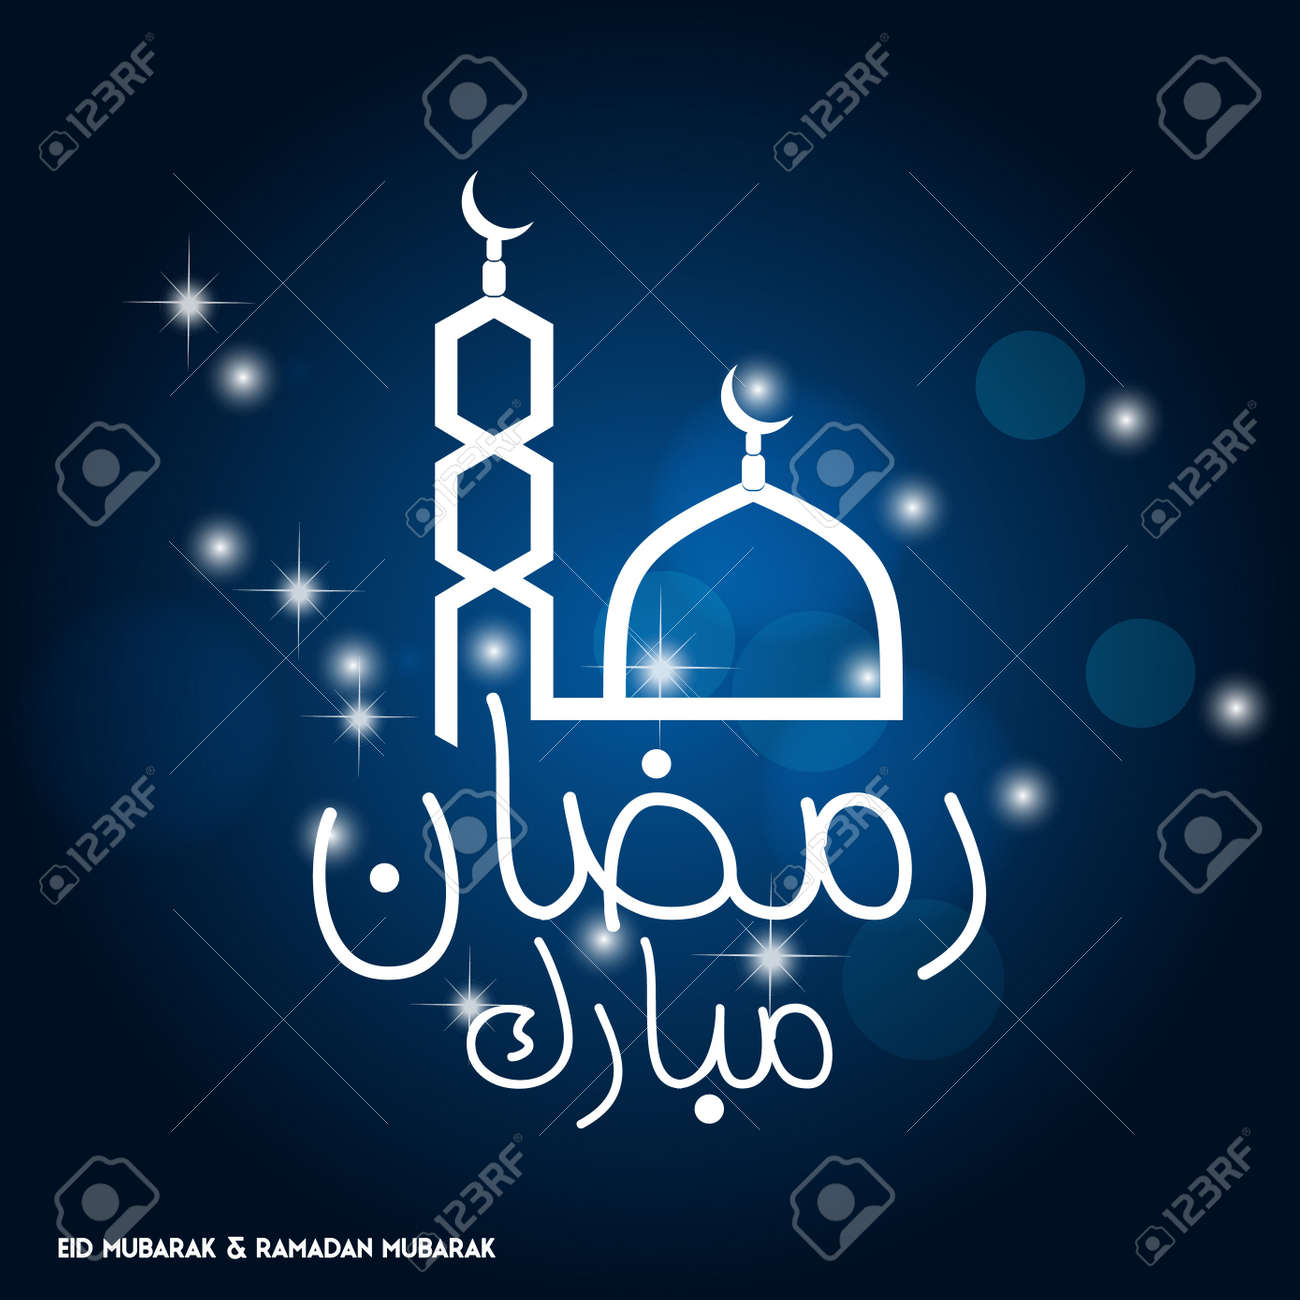 Ramadan Mubarak Simple Typography With A Masjid Dome On Dark Royalty Free Cliparts Vectors And Stock Illustration Image 110591221